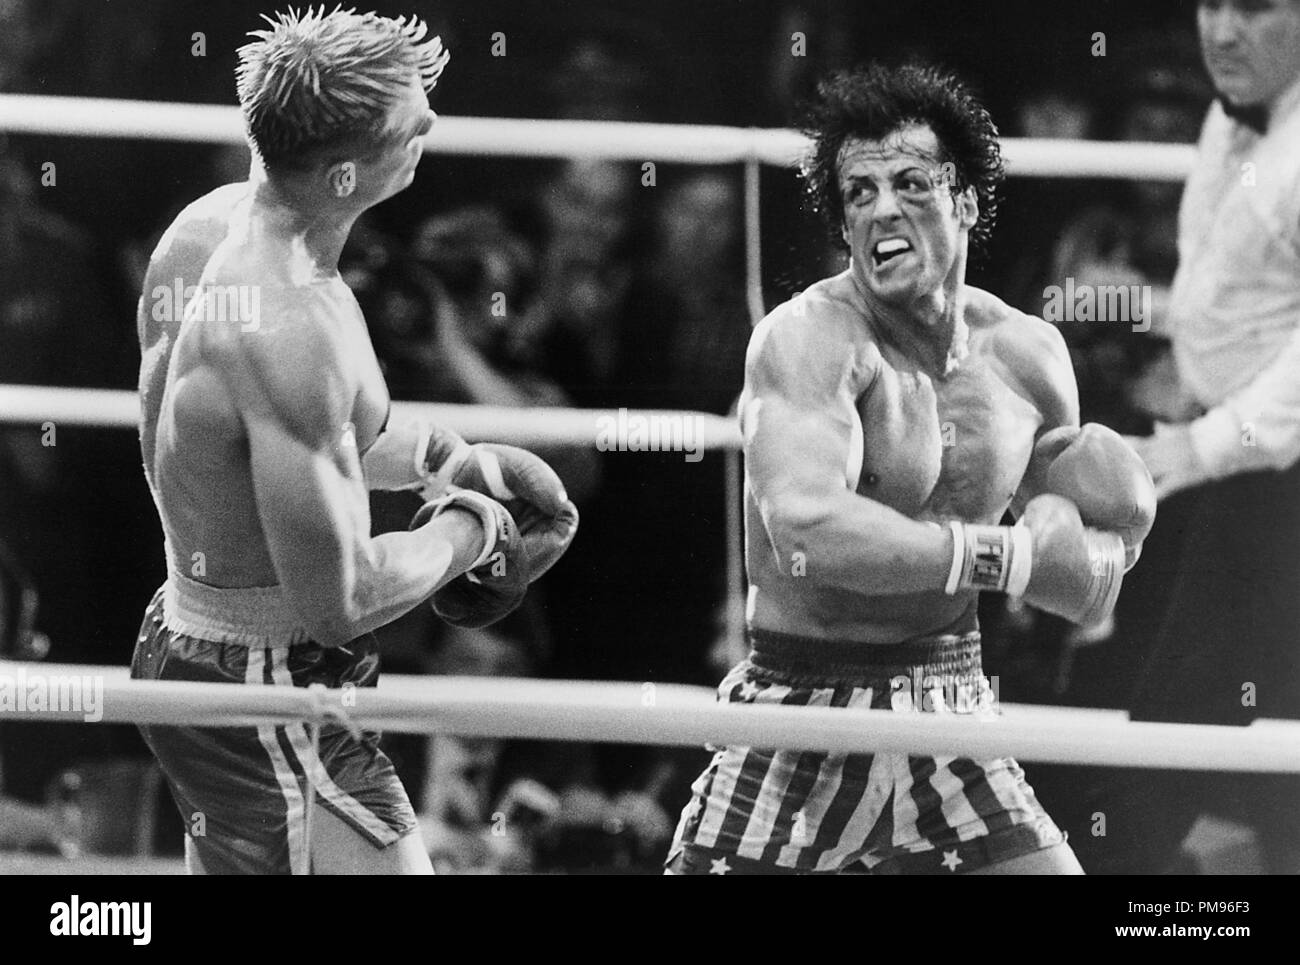 """Studio Publicity Still from """"Rocky IV"""" Sylvester Stallone, Dolph Lundgren © 1985 MGM/UA  All Rights Reserved   File Reference # 31703101THA  For Editorial Use Only Stock Photo"""